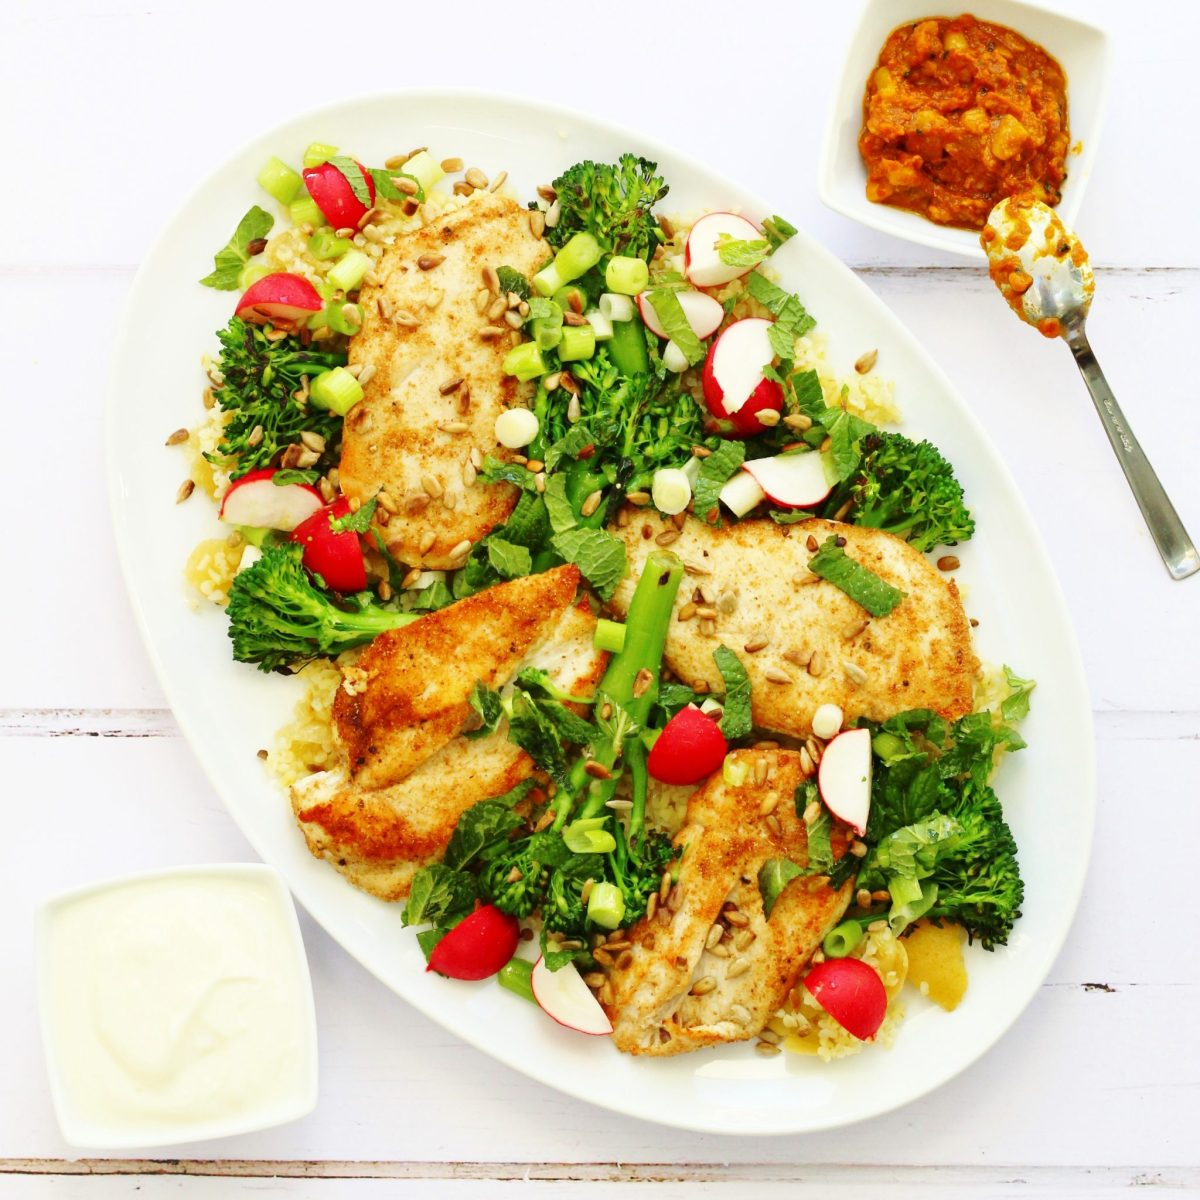 Jamie Oliver's Chicken, Broccoli and Bulgur Wheat Salad